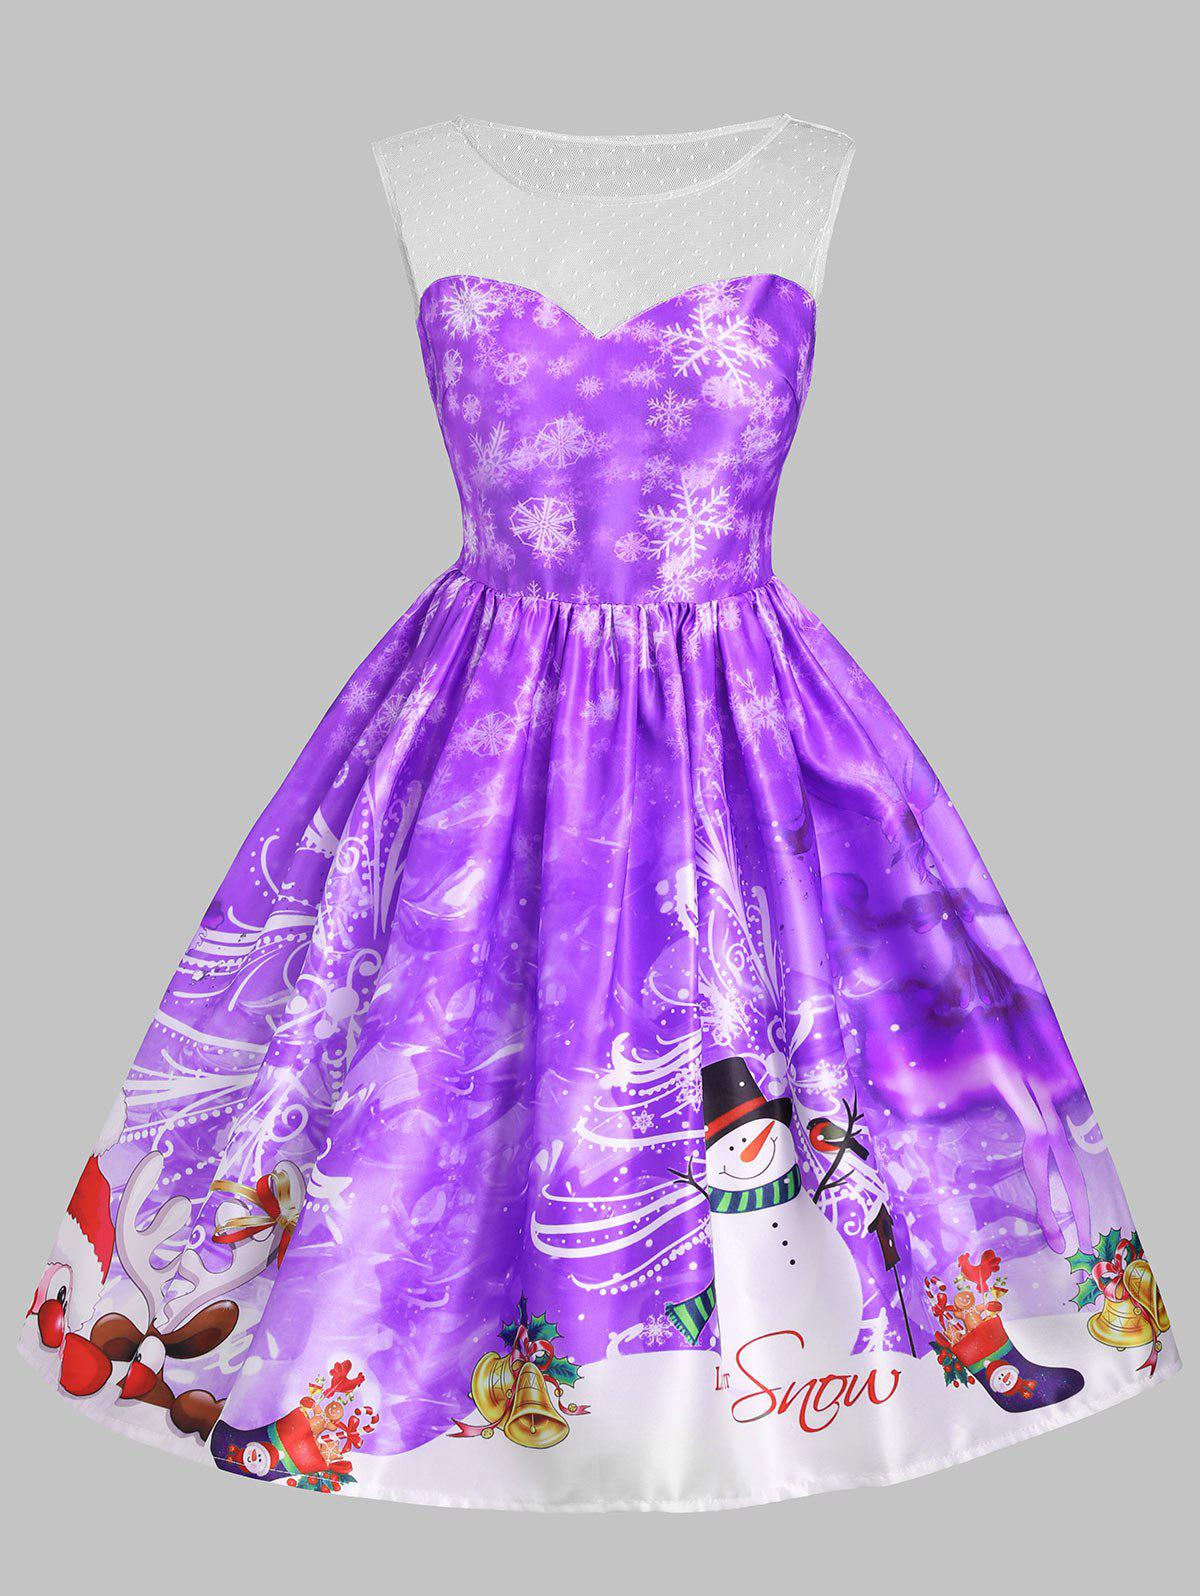 Christmas Snowman Snowflake Mesh Insert DressWOMEN<br><br>Size: M; Color: PURPLE; Style: Vintage; Material: Cotton,Polyester; Silhouette: A-Line; Dresses Length: Knee-Length; Neckline: Round Collar; Sleeve Length: Sleeveless; Embellishment: Mesh; Pattern Type: Letter,Print; With Belt: No; Season: Fall,Spring,Summer; Weight: 0.3500kg; Package Contents: 1 x Dress;